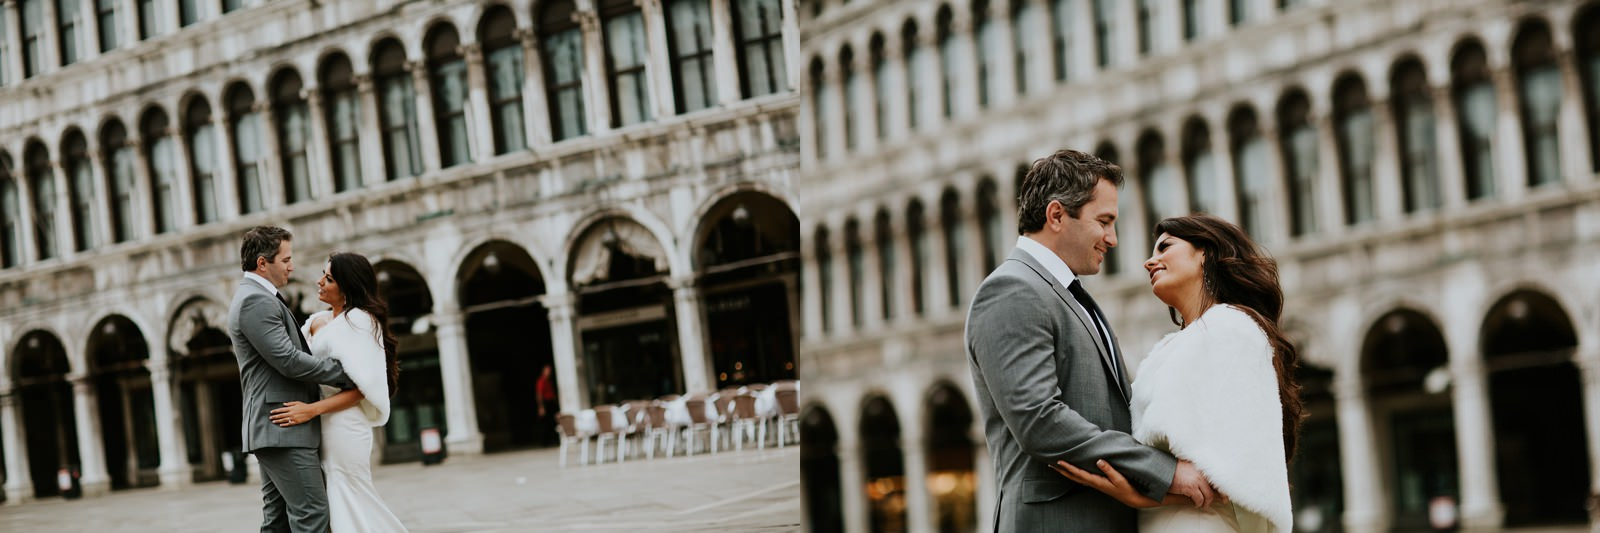 Engagement Photosession Venice Italy | Venice Engagement photographer